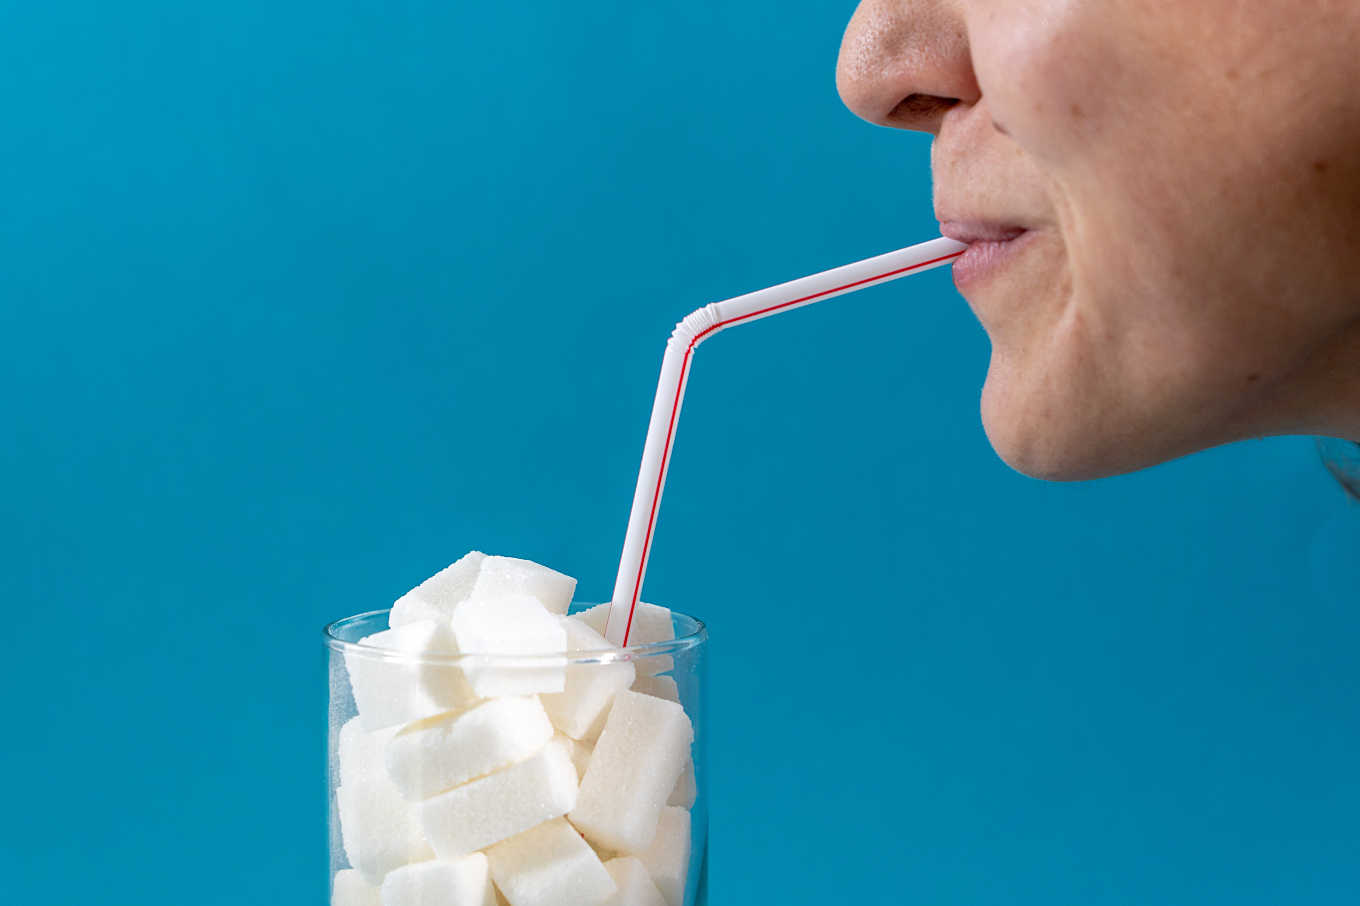 How much sugar passes through your lips? Simple tips to cut back on added sugars